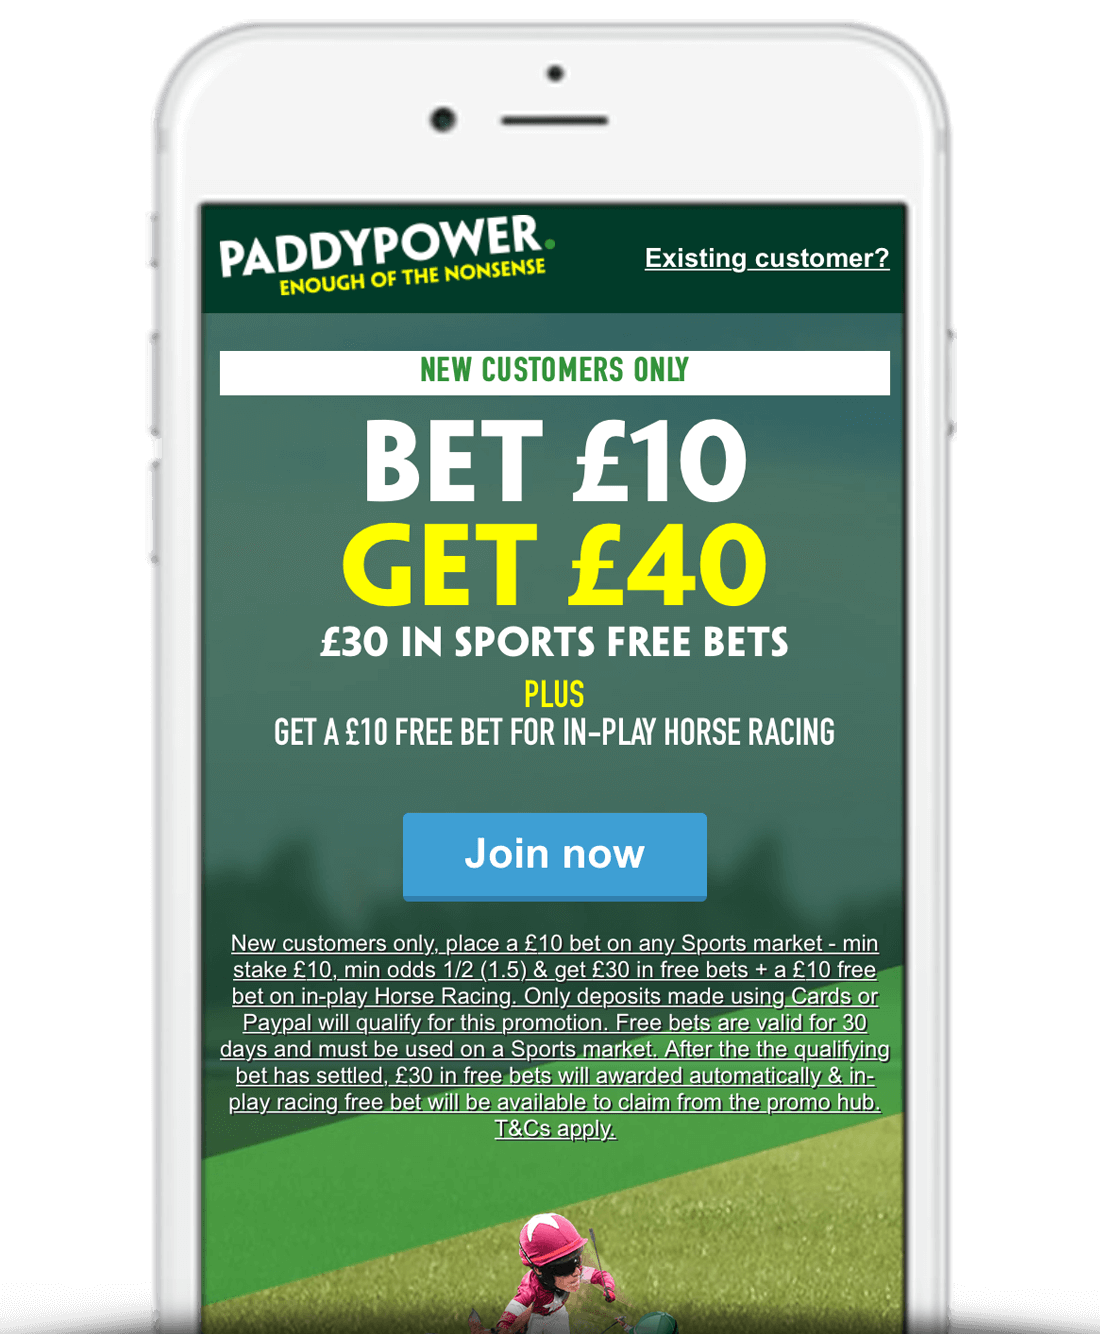 What Is The Paddy Power Bet £10 Get £40 Offer?